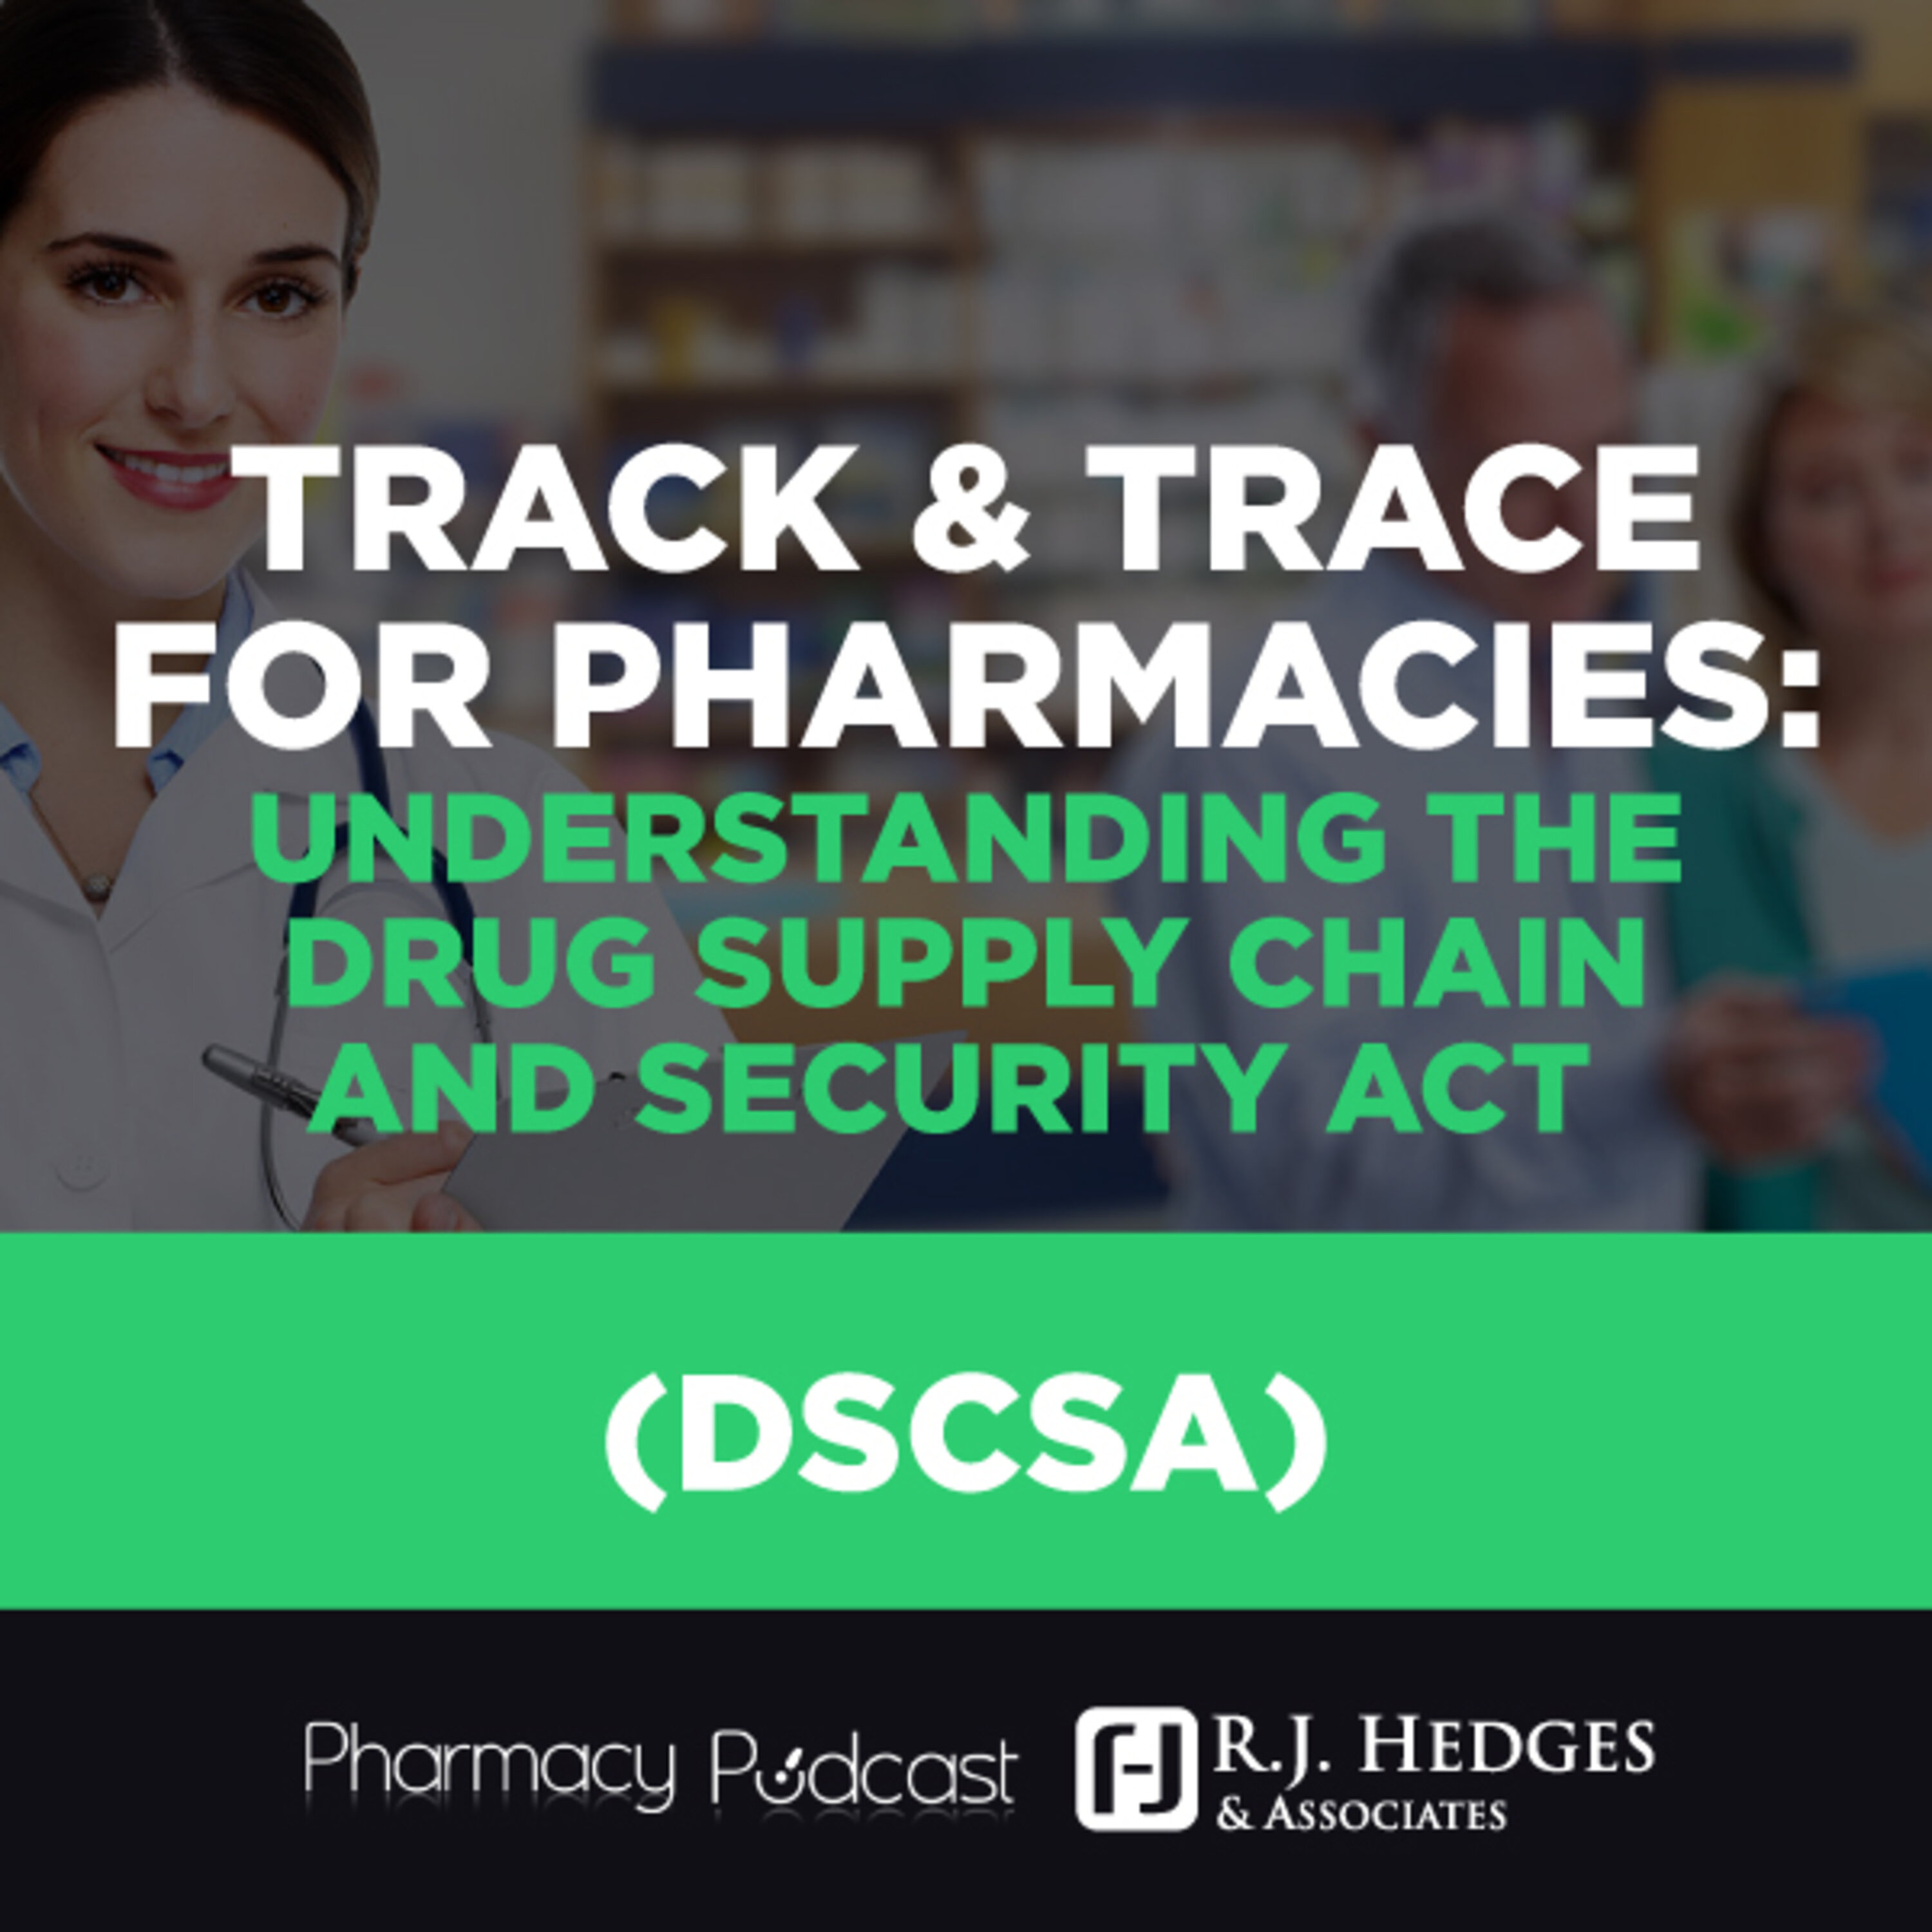 Track and Trace for Pharmacies: Understanding DSCSA